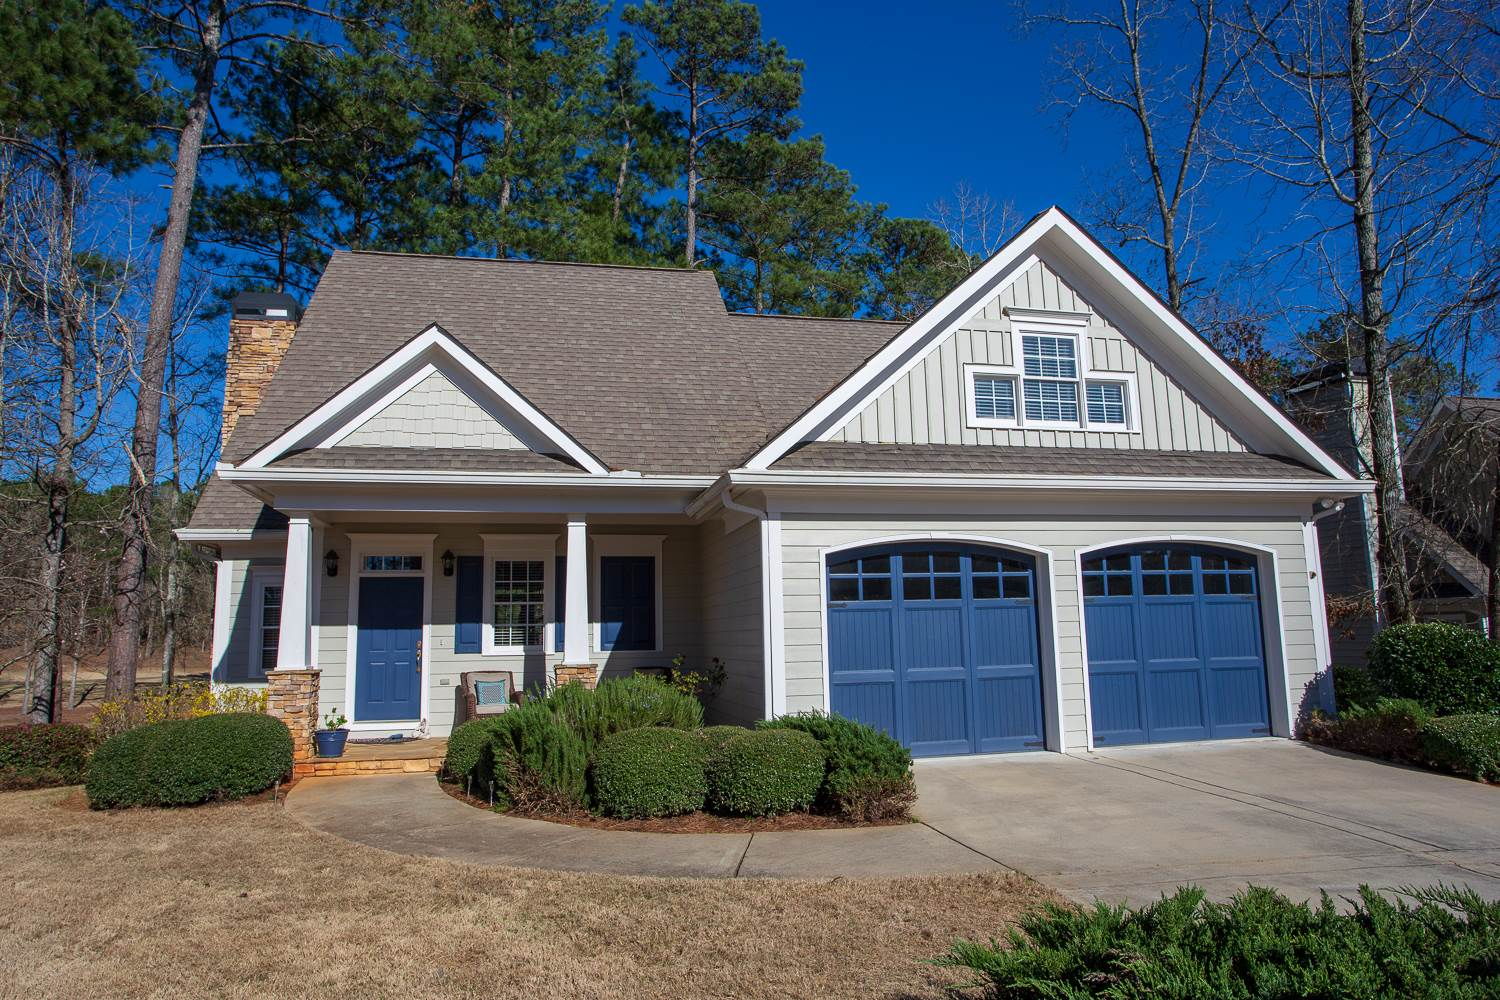 One of Lake Oconee Harbor Club 3 Bedroom Homes for Sale at 1080 HARBOR RIDGE DRIVE